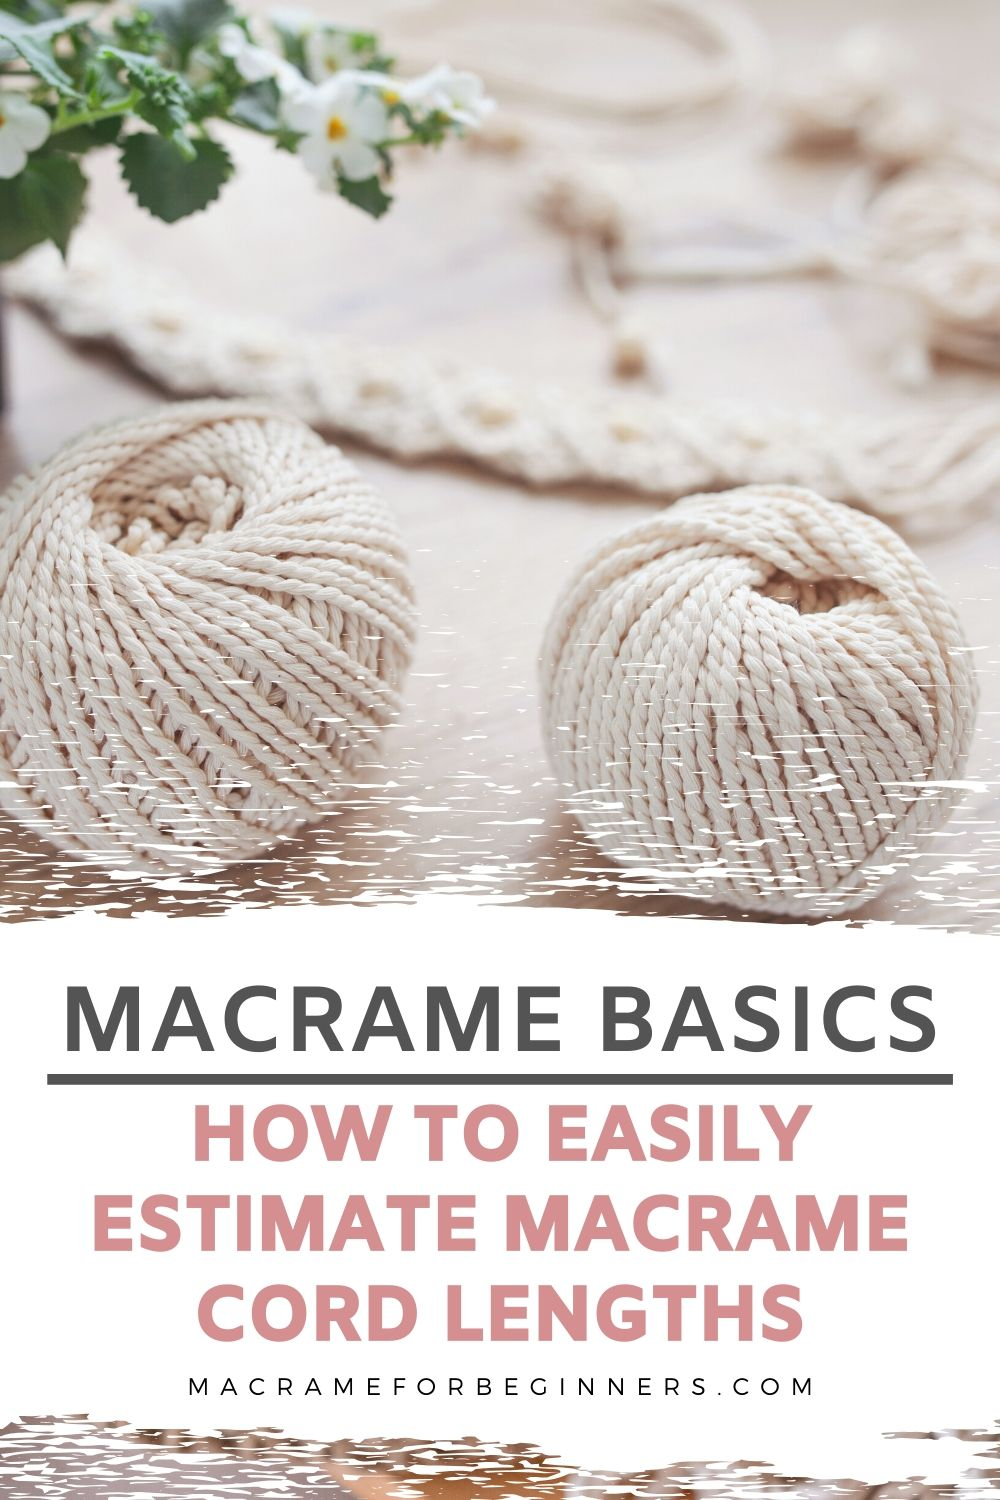 Macrame Basics - How To Easily Measure Macrame Cord Lengths - Macrame Tutorials for Beginners